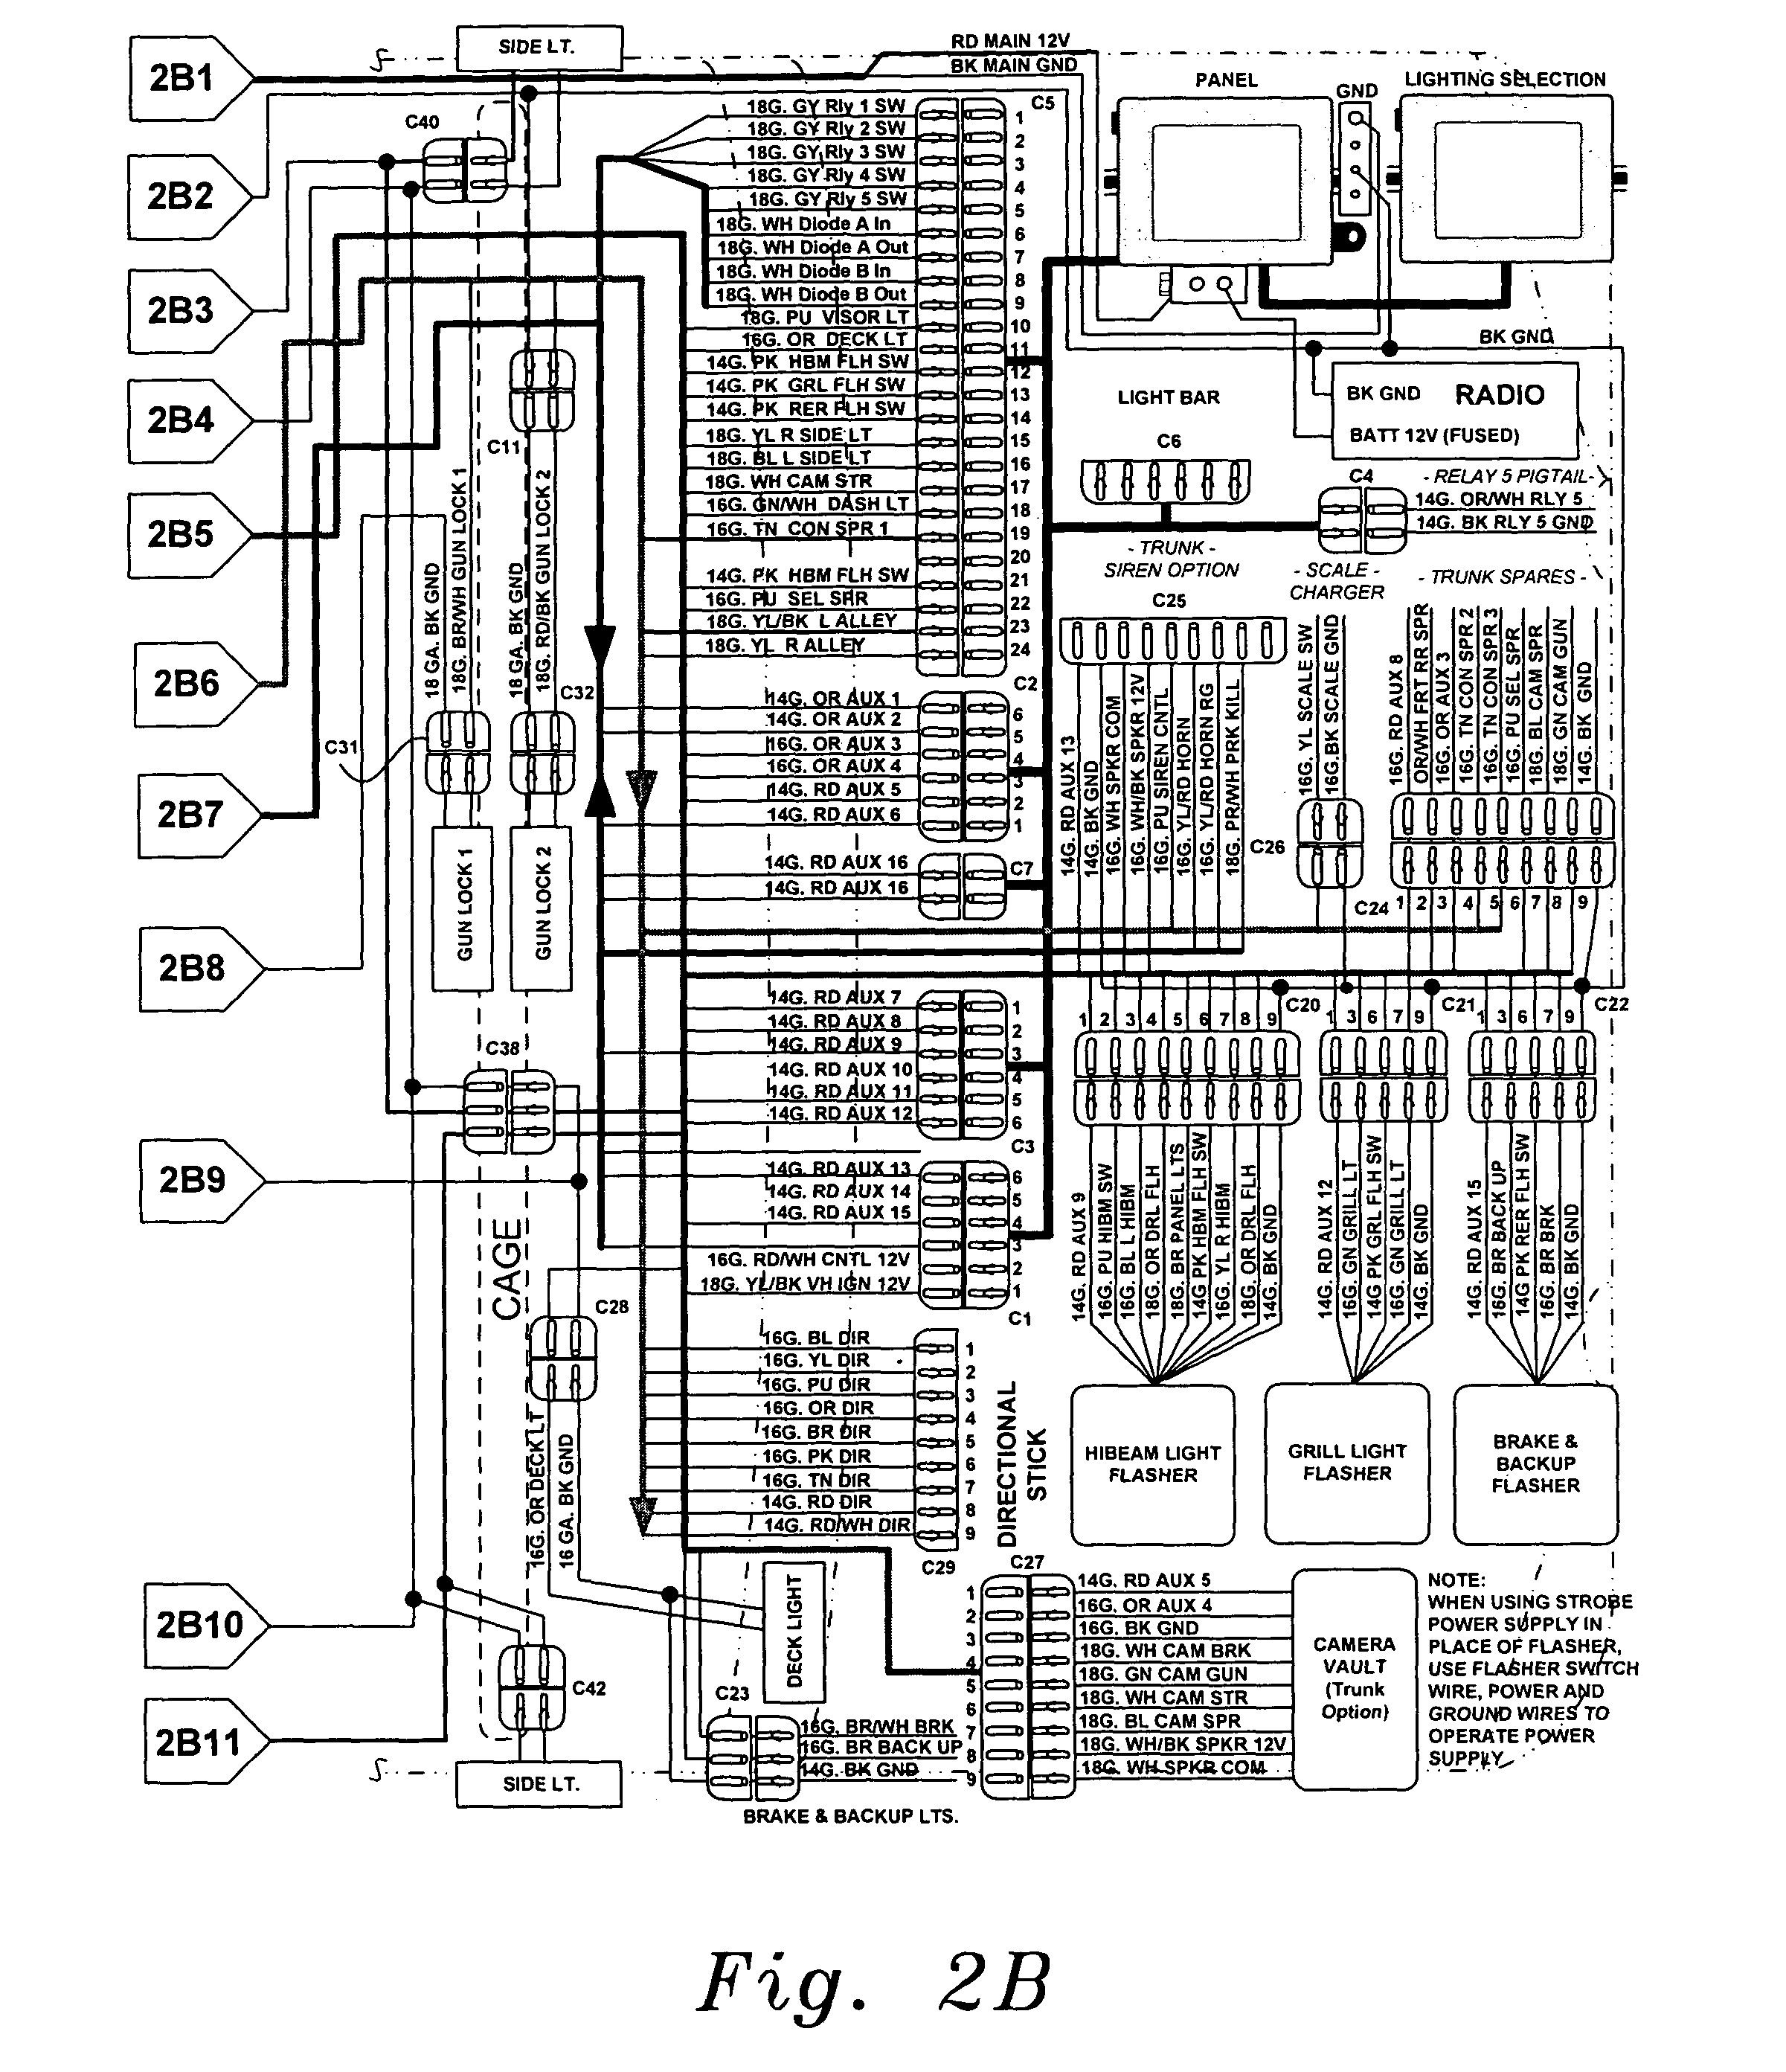 5915a5 Whelen Siren Wiring Diagram Whelen 9000 Light Bar Wiring Wiring Library